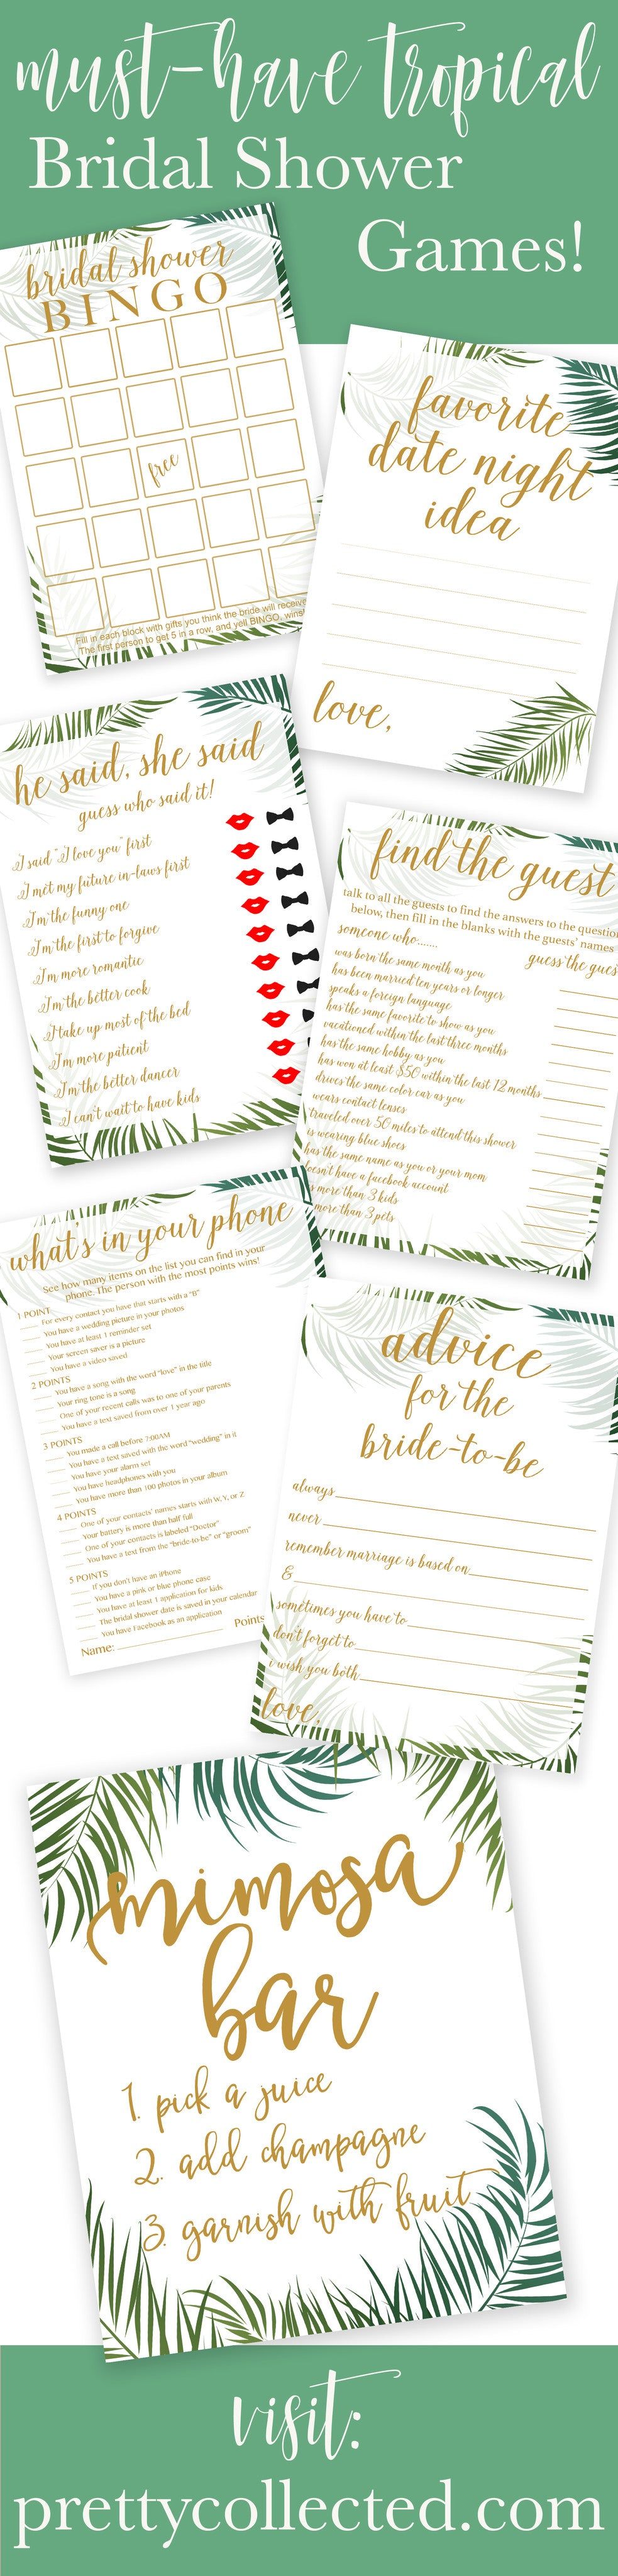 Tropical Bridal Shower Games Your Guests Will Want to Play